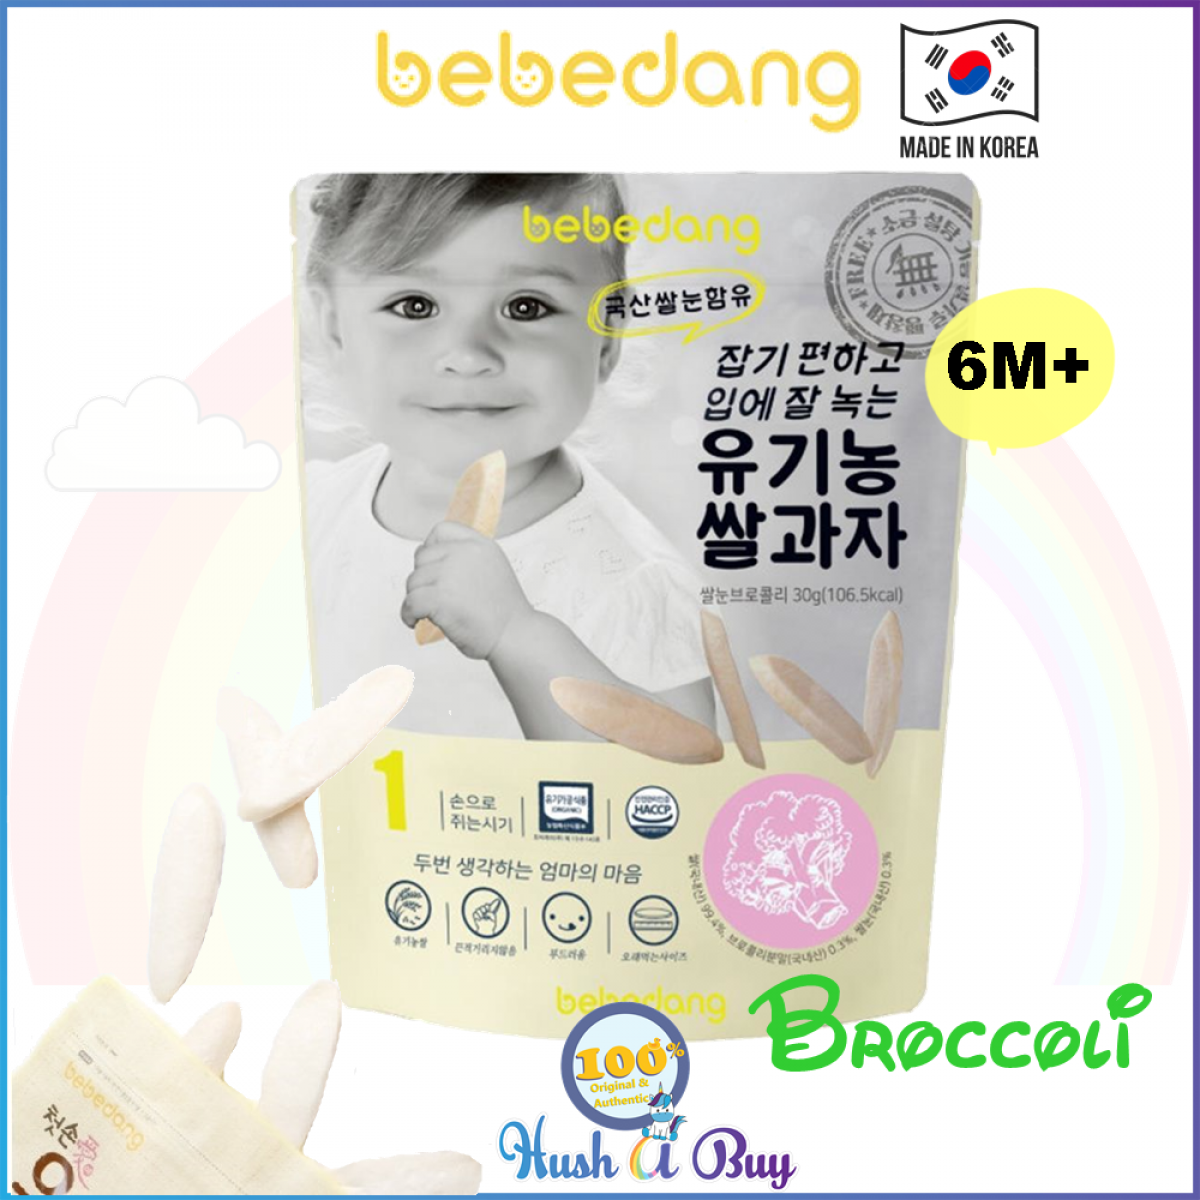 Bebedang Organic Puffed Rice Snack 6M+ Stage 1 - Made in Korea (Expiry: MAR 2020) 大米饼